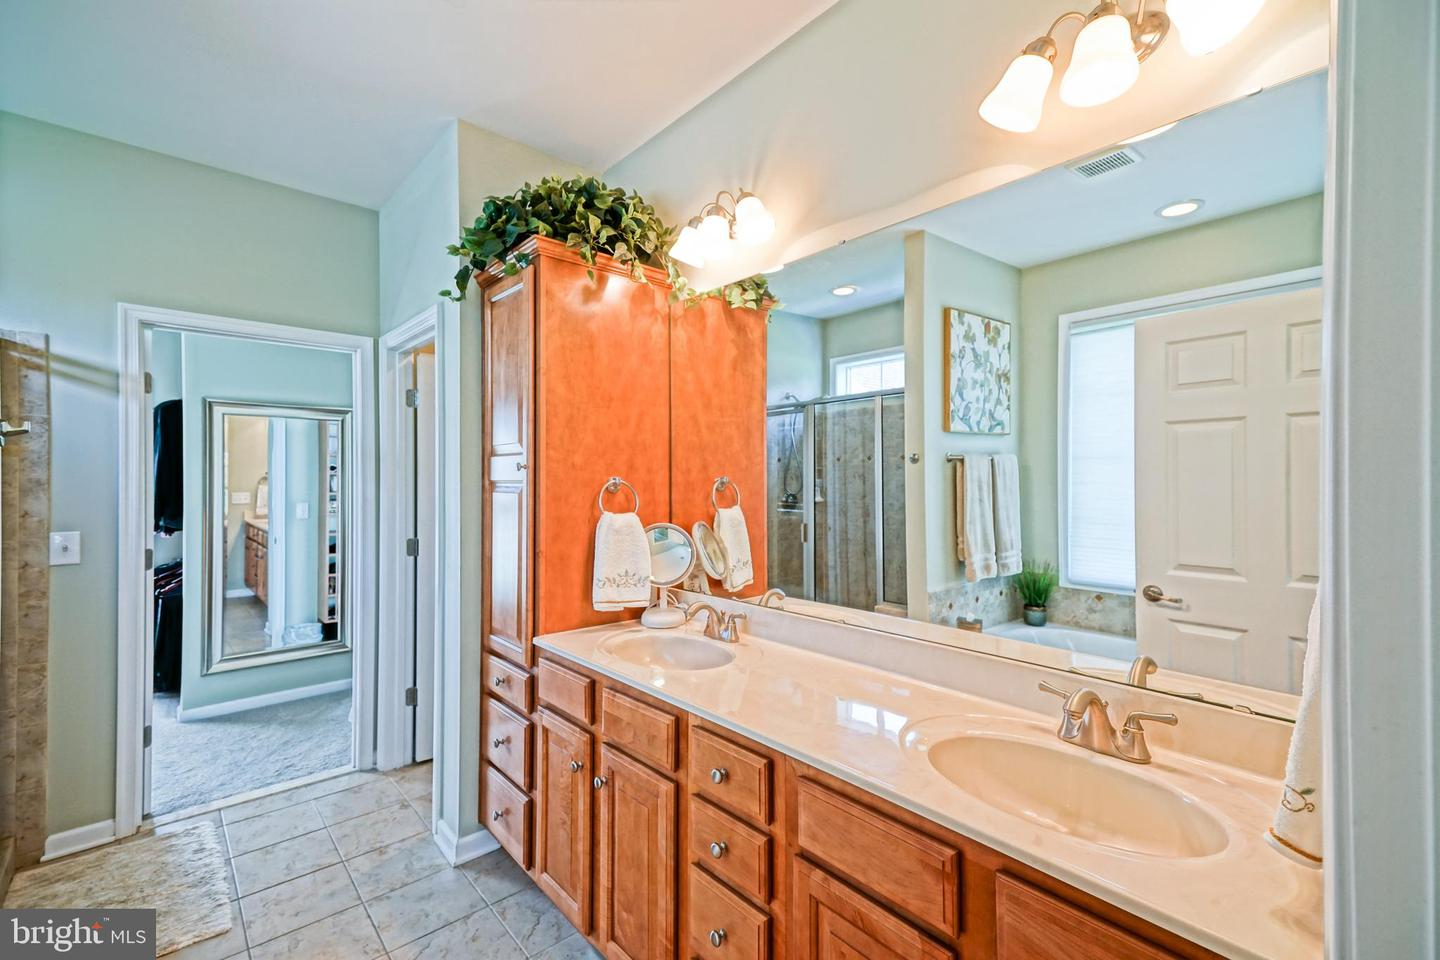 DESU139128-301667382678-2019-08-05-10-43-56 35222 Overfalls Dr N | Lewes, DE Real Estate For Sale | MLS# Desu139128  - Lee Ann Group